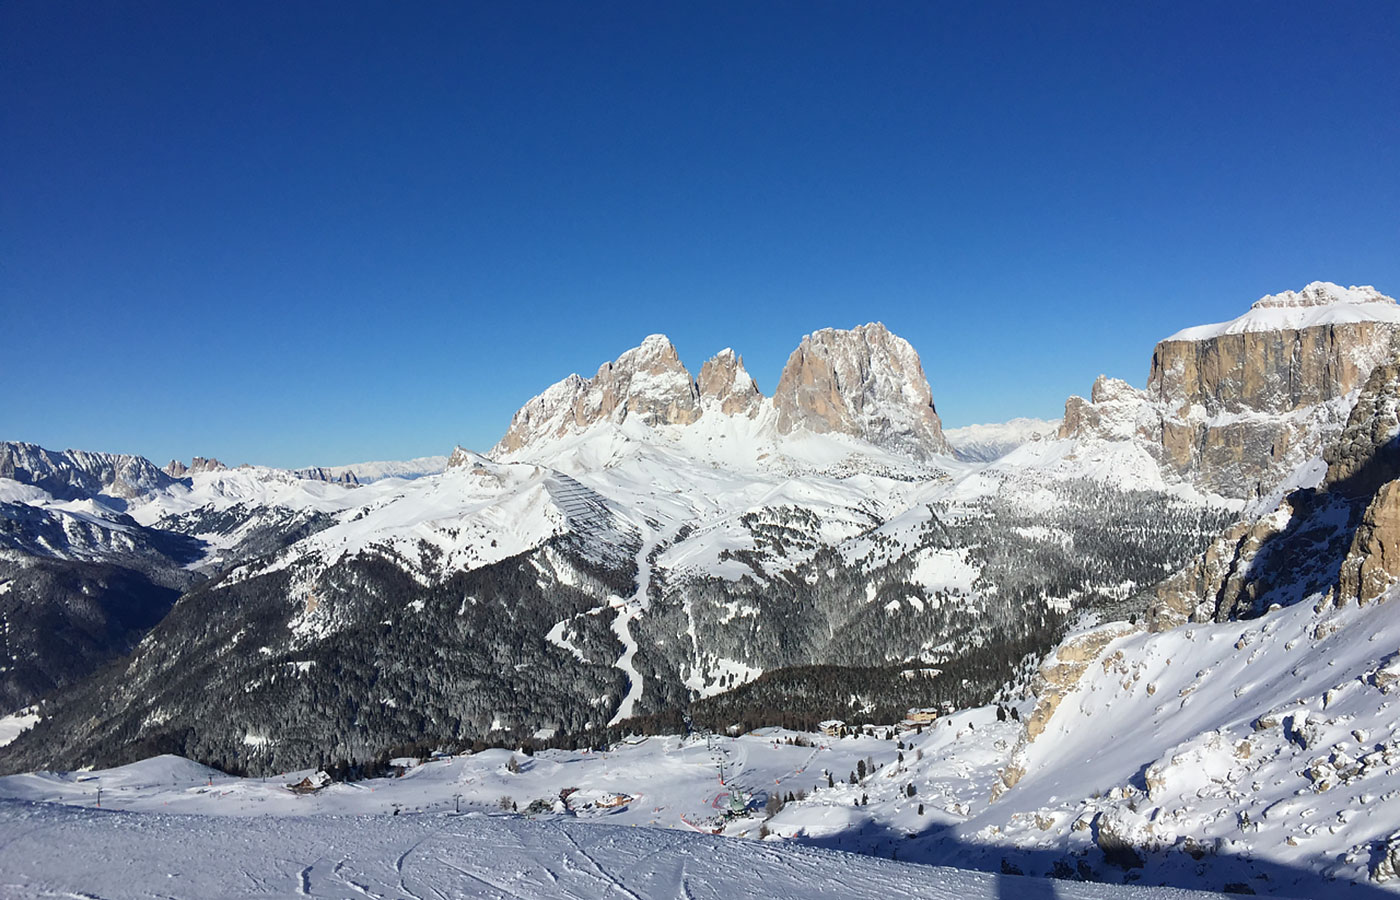 Snowy Dolomites in winter